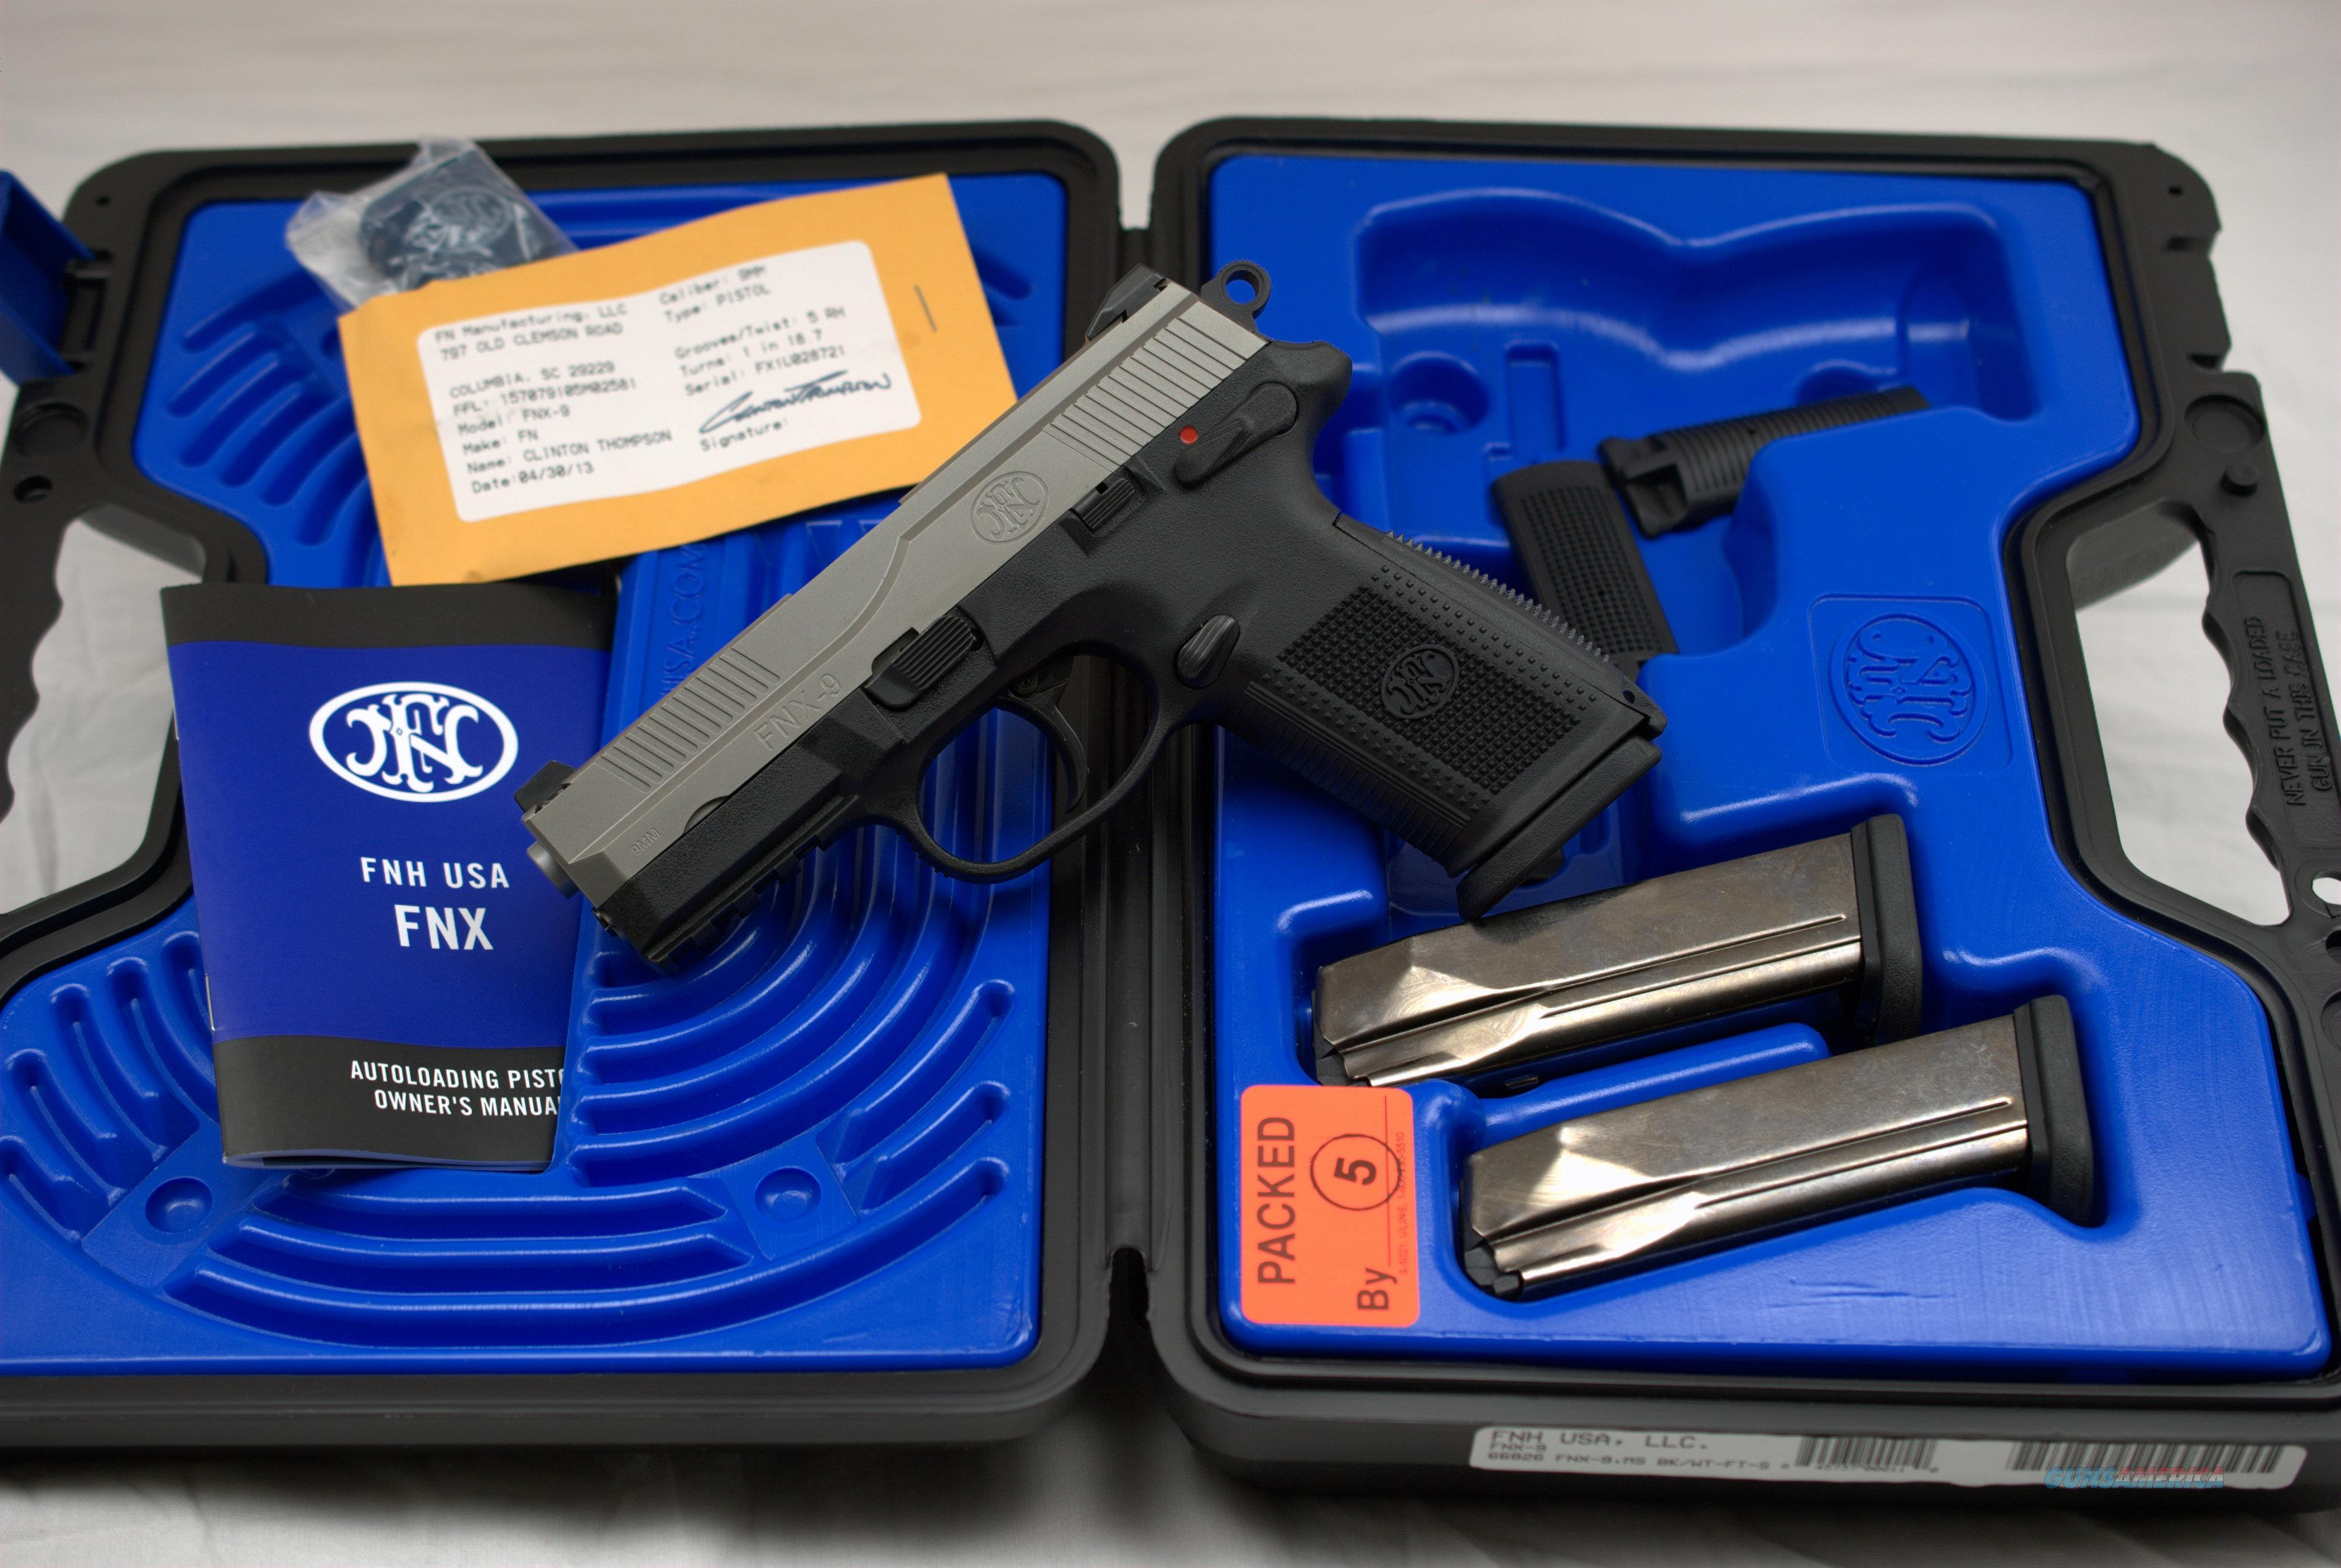 FNH FNX9 9mm 2 Tone DA/SA 3 MAGS Day sights 66826   Guns > Pistols > FNH - Fabrique Nationale (FN) Pistols > FNX